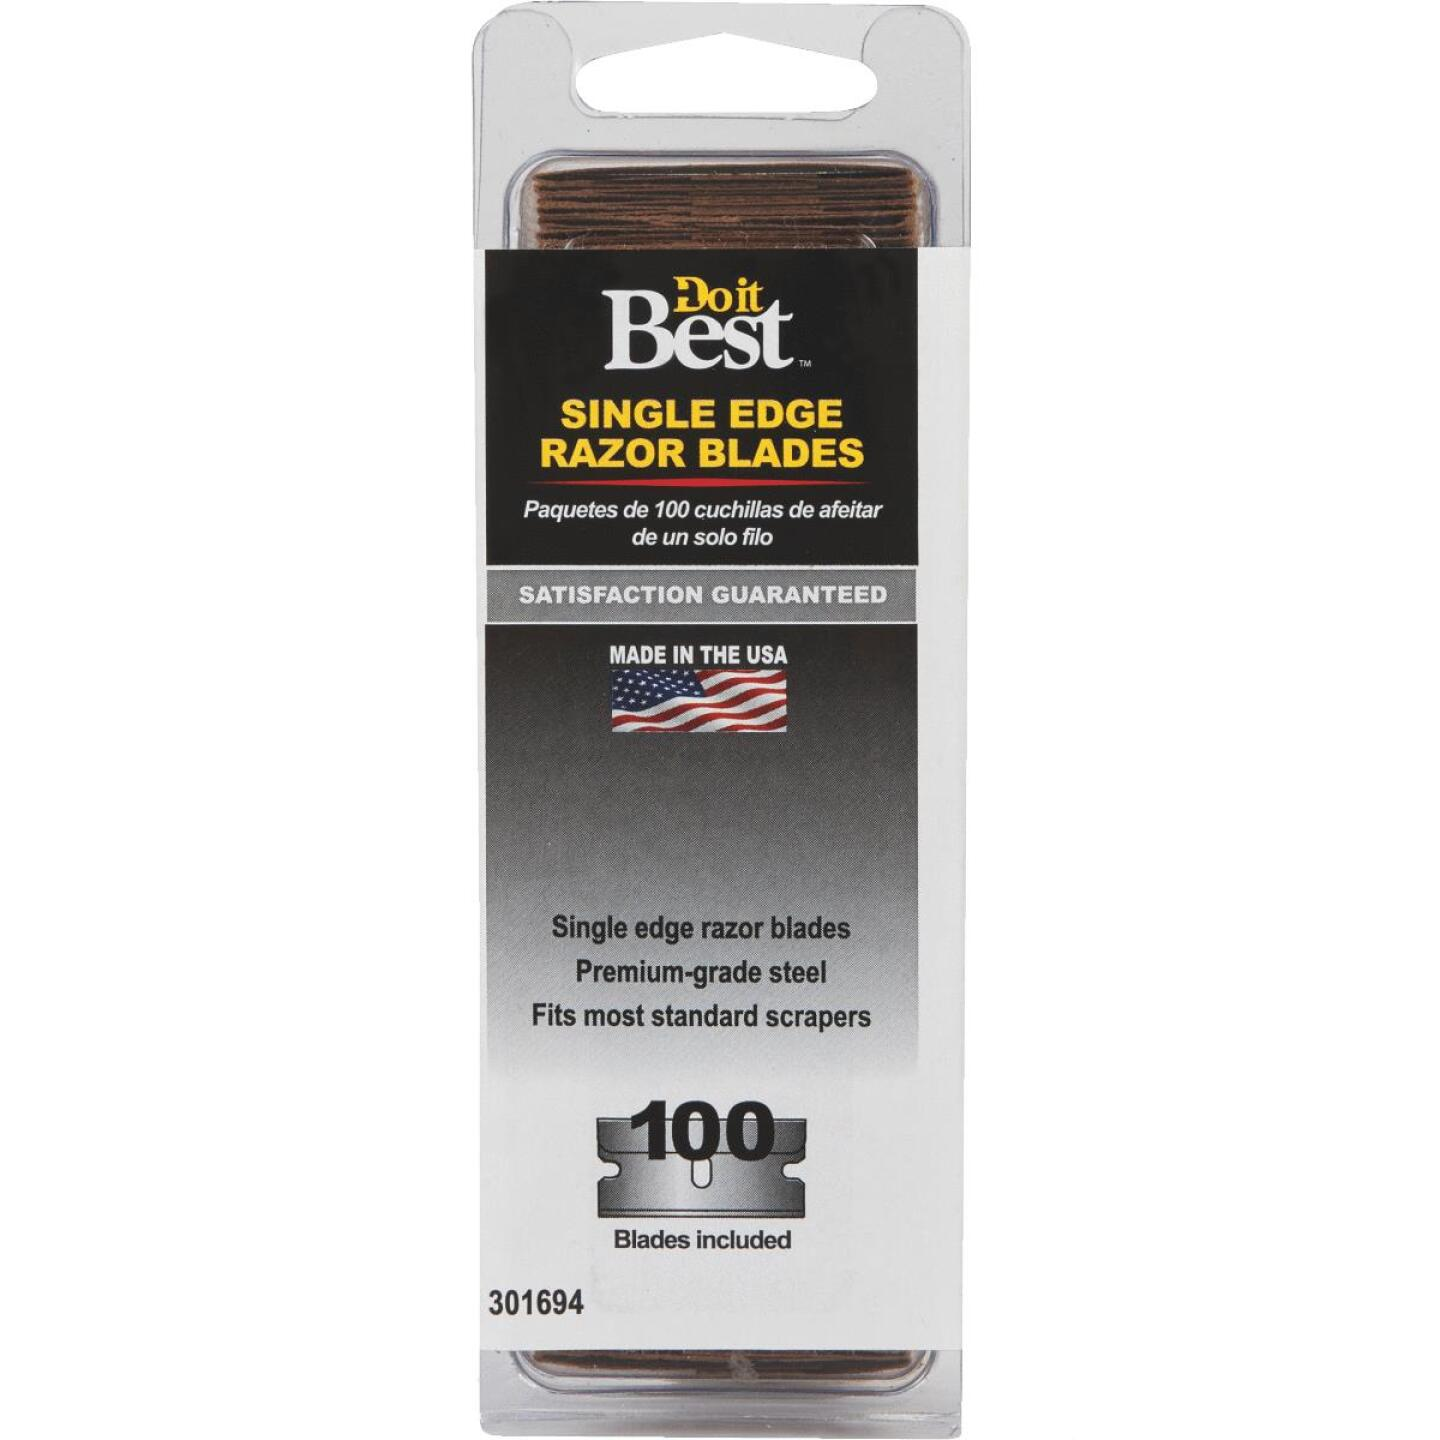 Do it Best Single Edge Razor Blades (100-Pack) Image 2